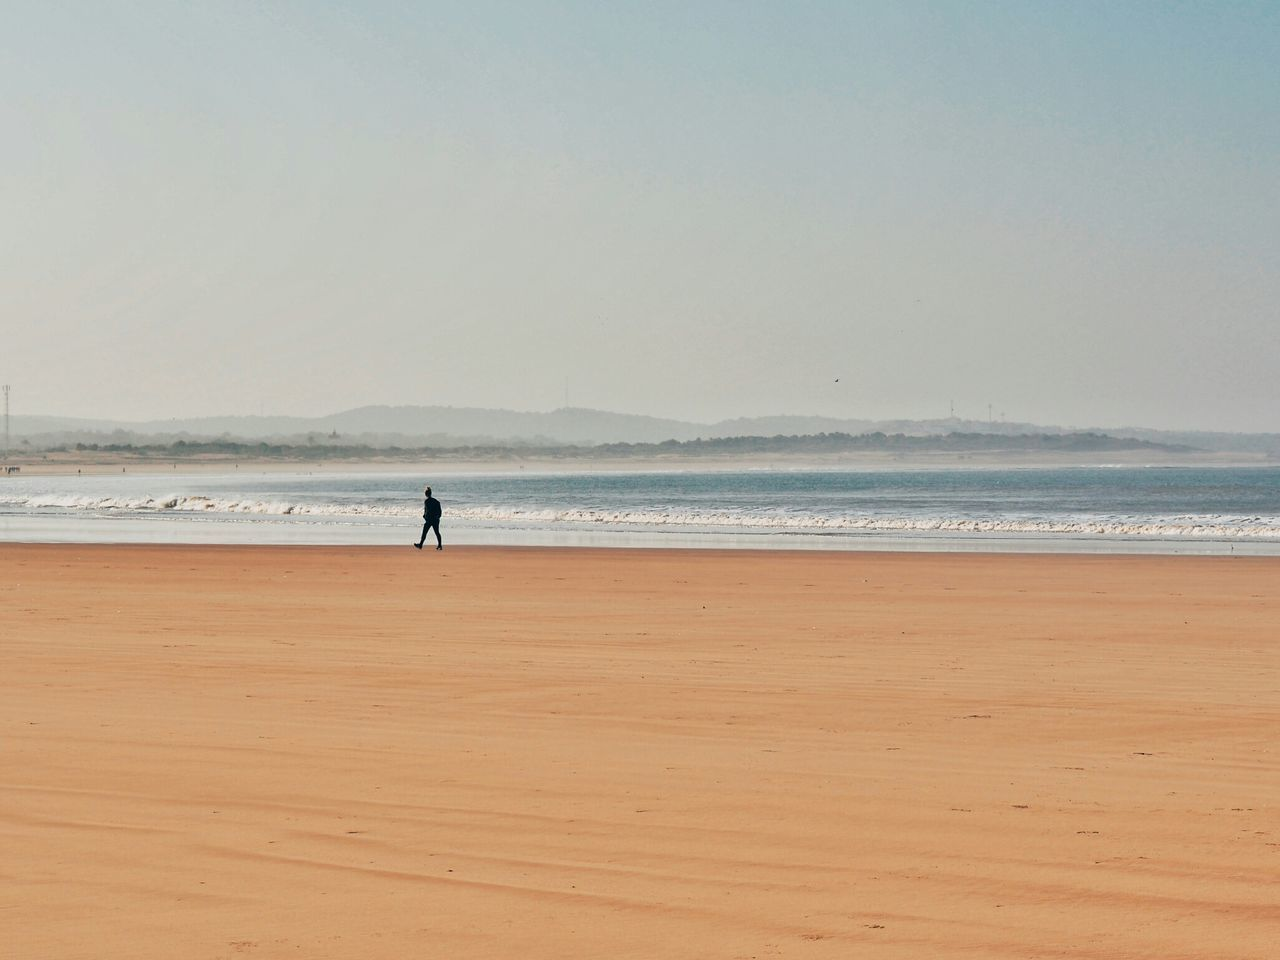 Sea Beach Horizon Over Water Sand Silhouette Outdoors One Person Nature Sky Water Real People Adult Adults Only One Man Only Lonely Loneliness Early Morning Morning Walk Beach Walk Essaouira Bay Essaouira Morocco